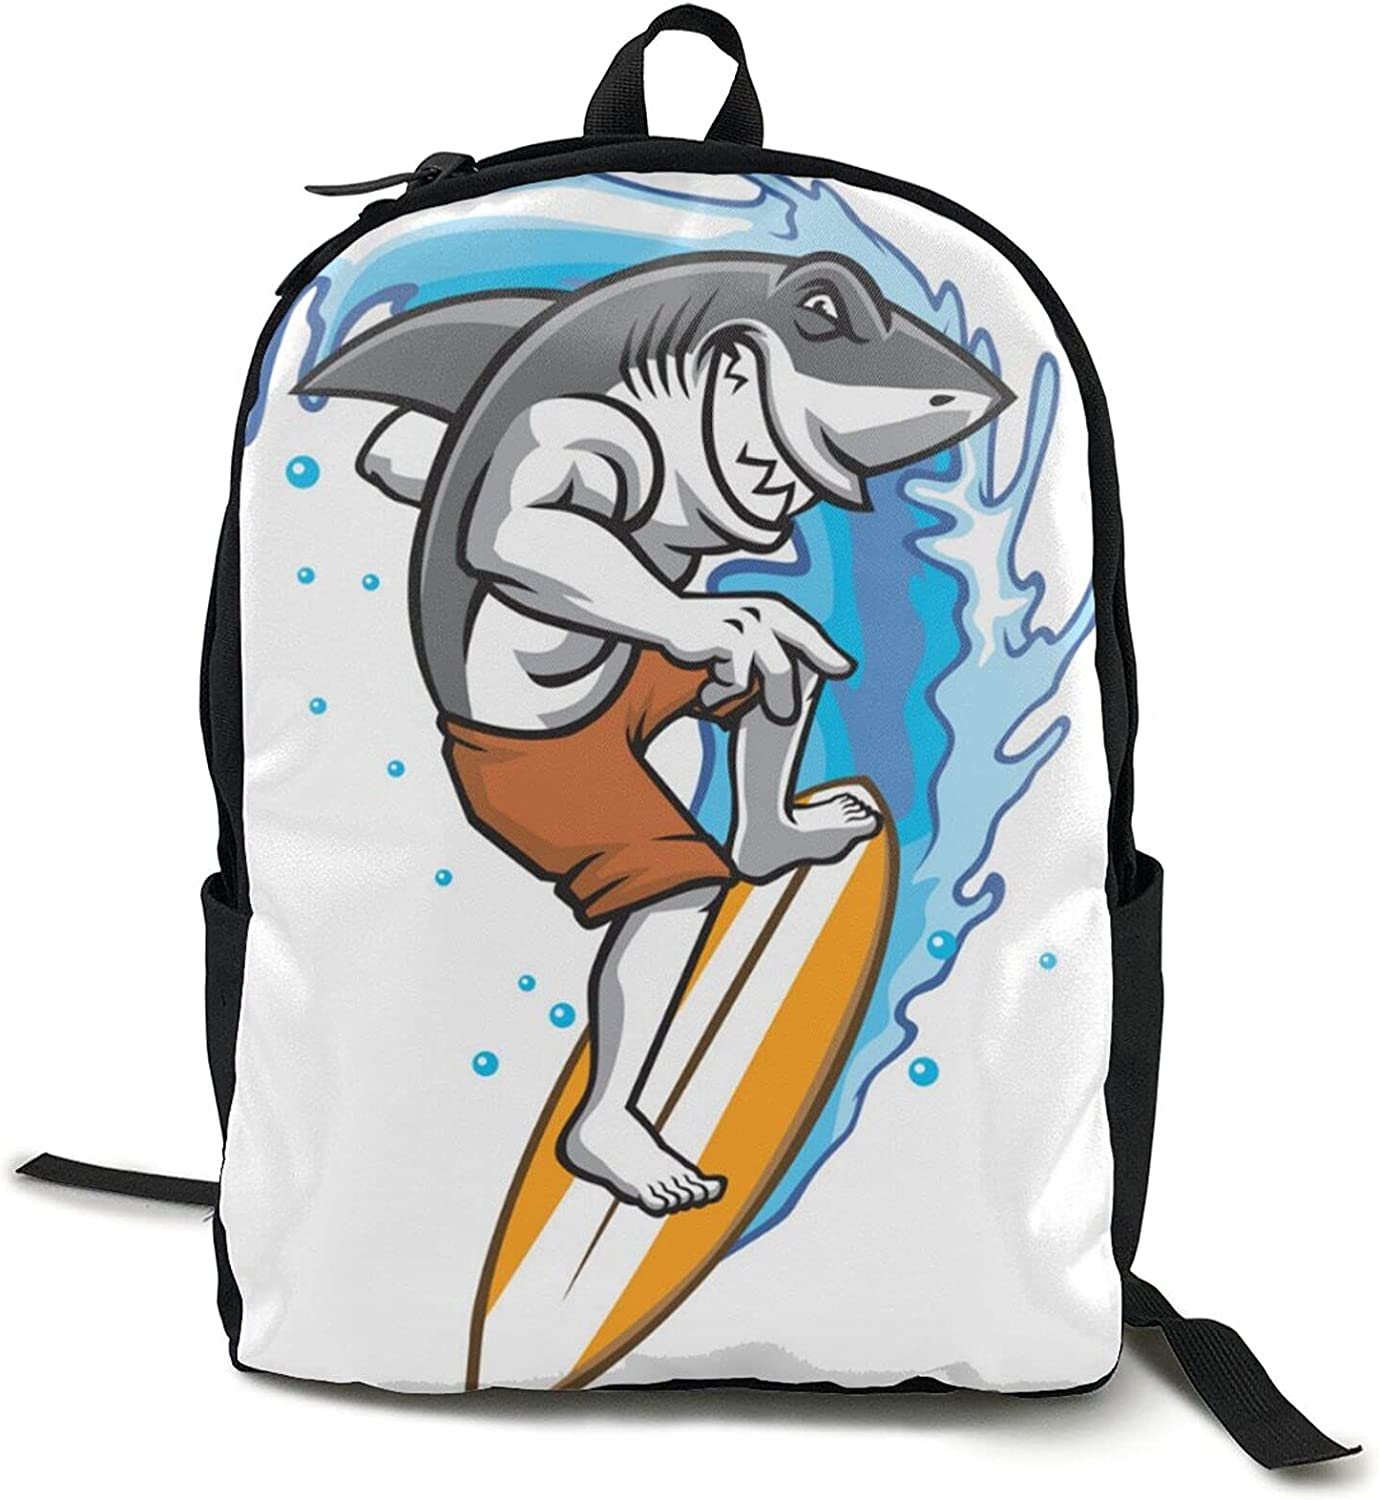 Fashion Backpack Milwaukee Mall Max 54% OFF With Lunch Bag Student Bookbag Case Pencil Sh